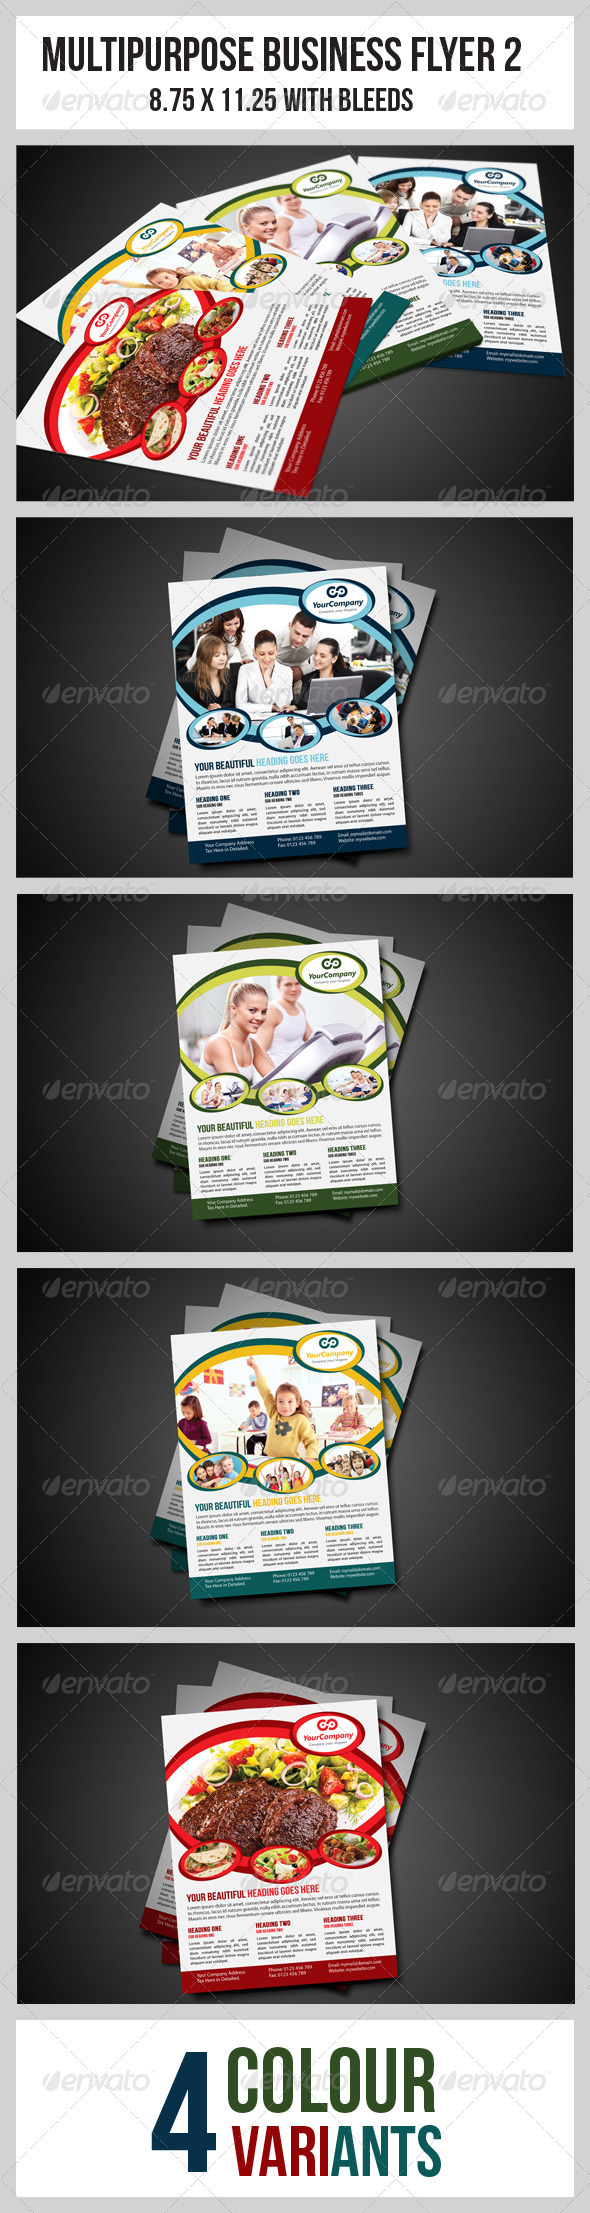 GraphicRiver Multipurpose Business Flyer 2 3557035